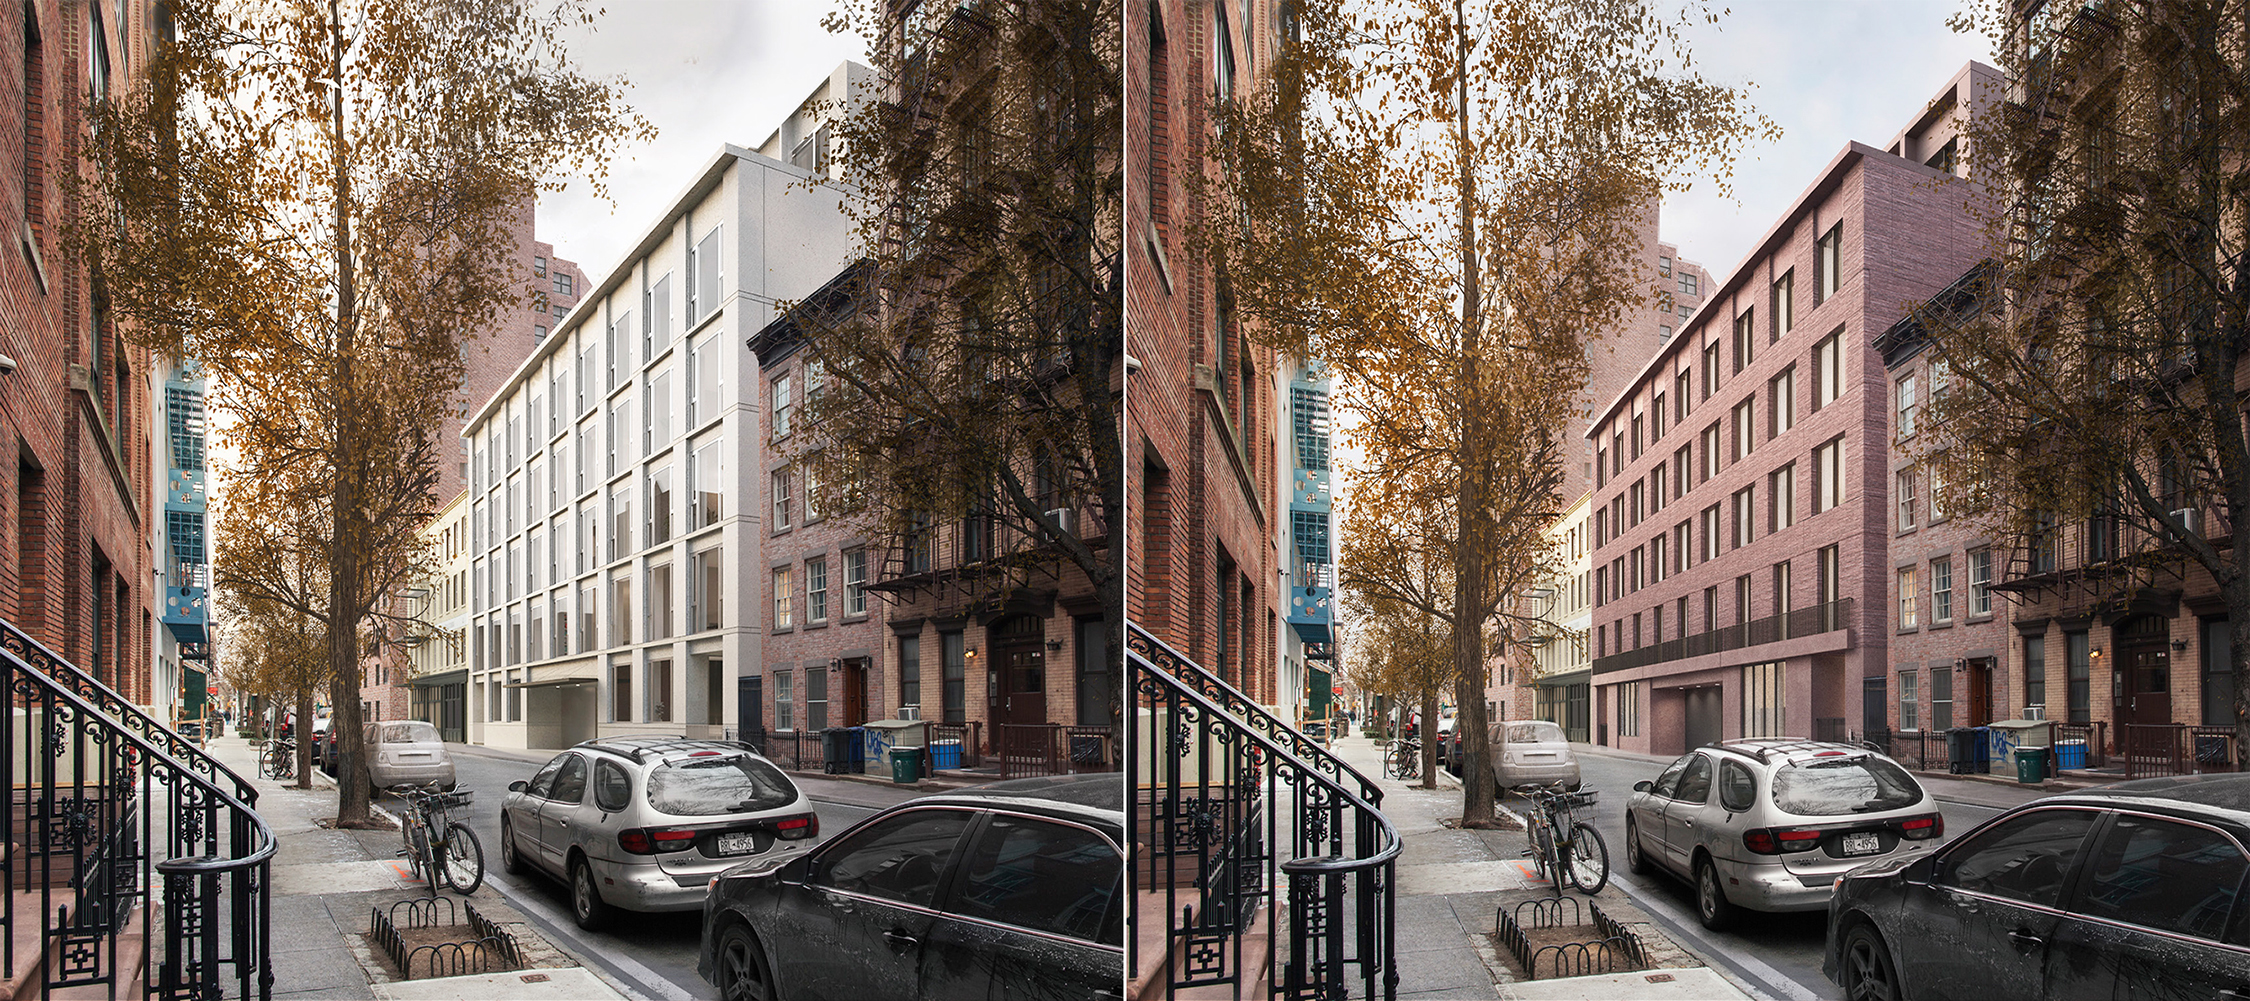 Previous and revised proposals for 11-19 Jane Street, by Sir David Chipperfield